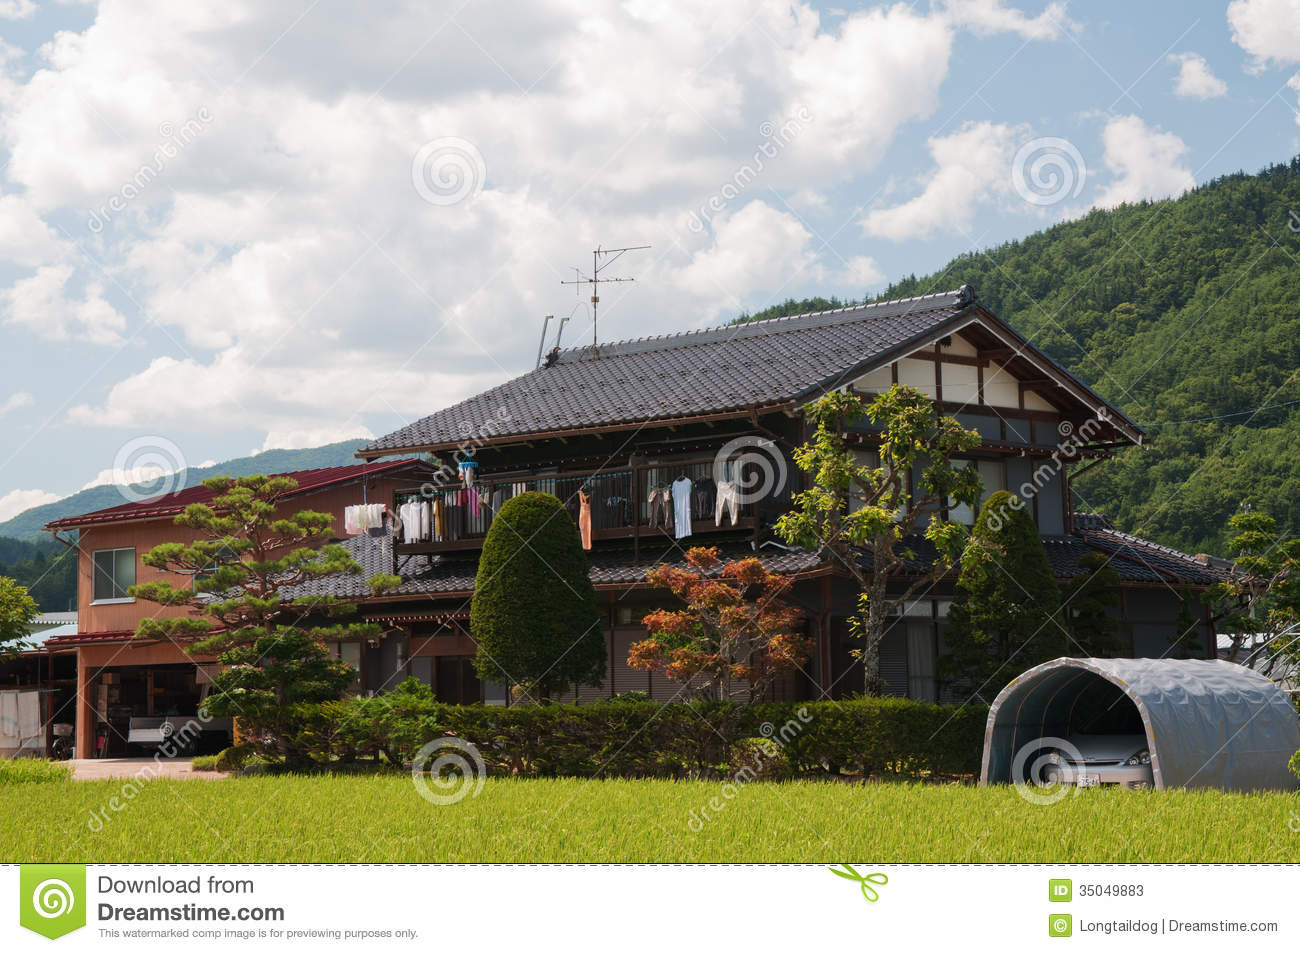 lndliches haus in japan bergen redaktionelles stockfoto - Haus Japan